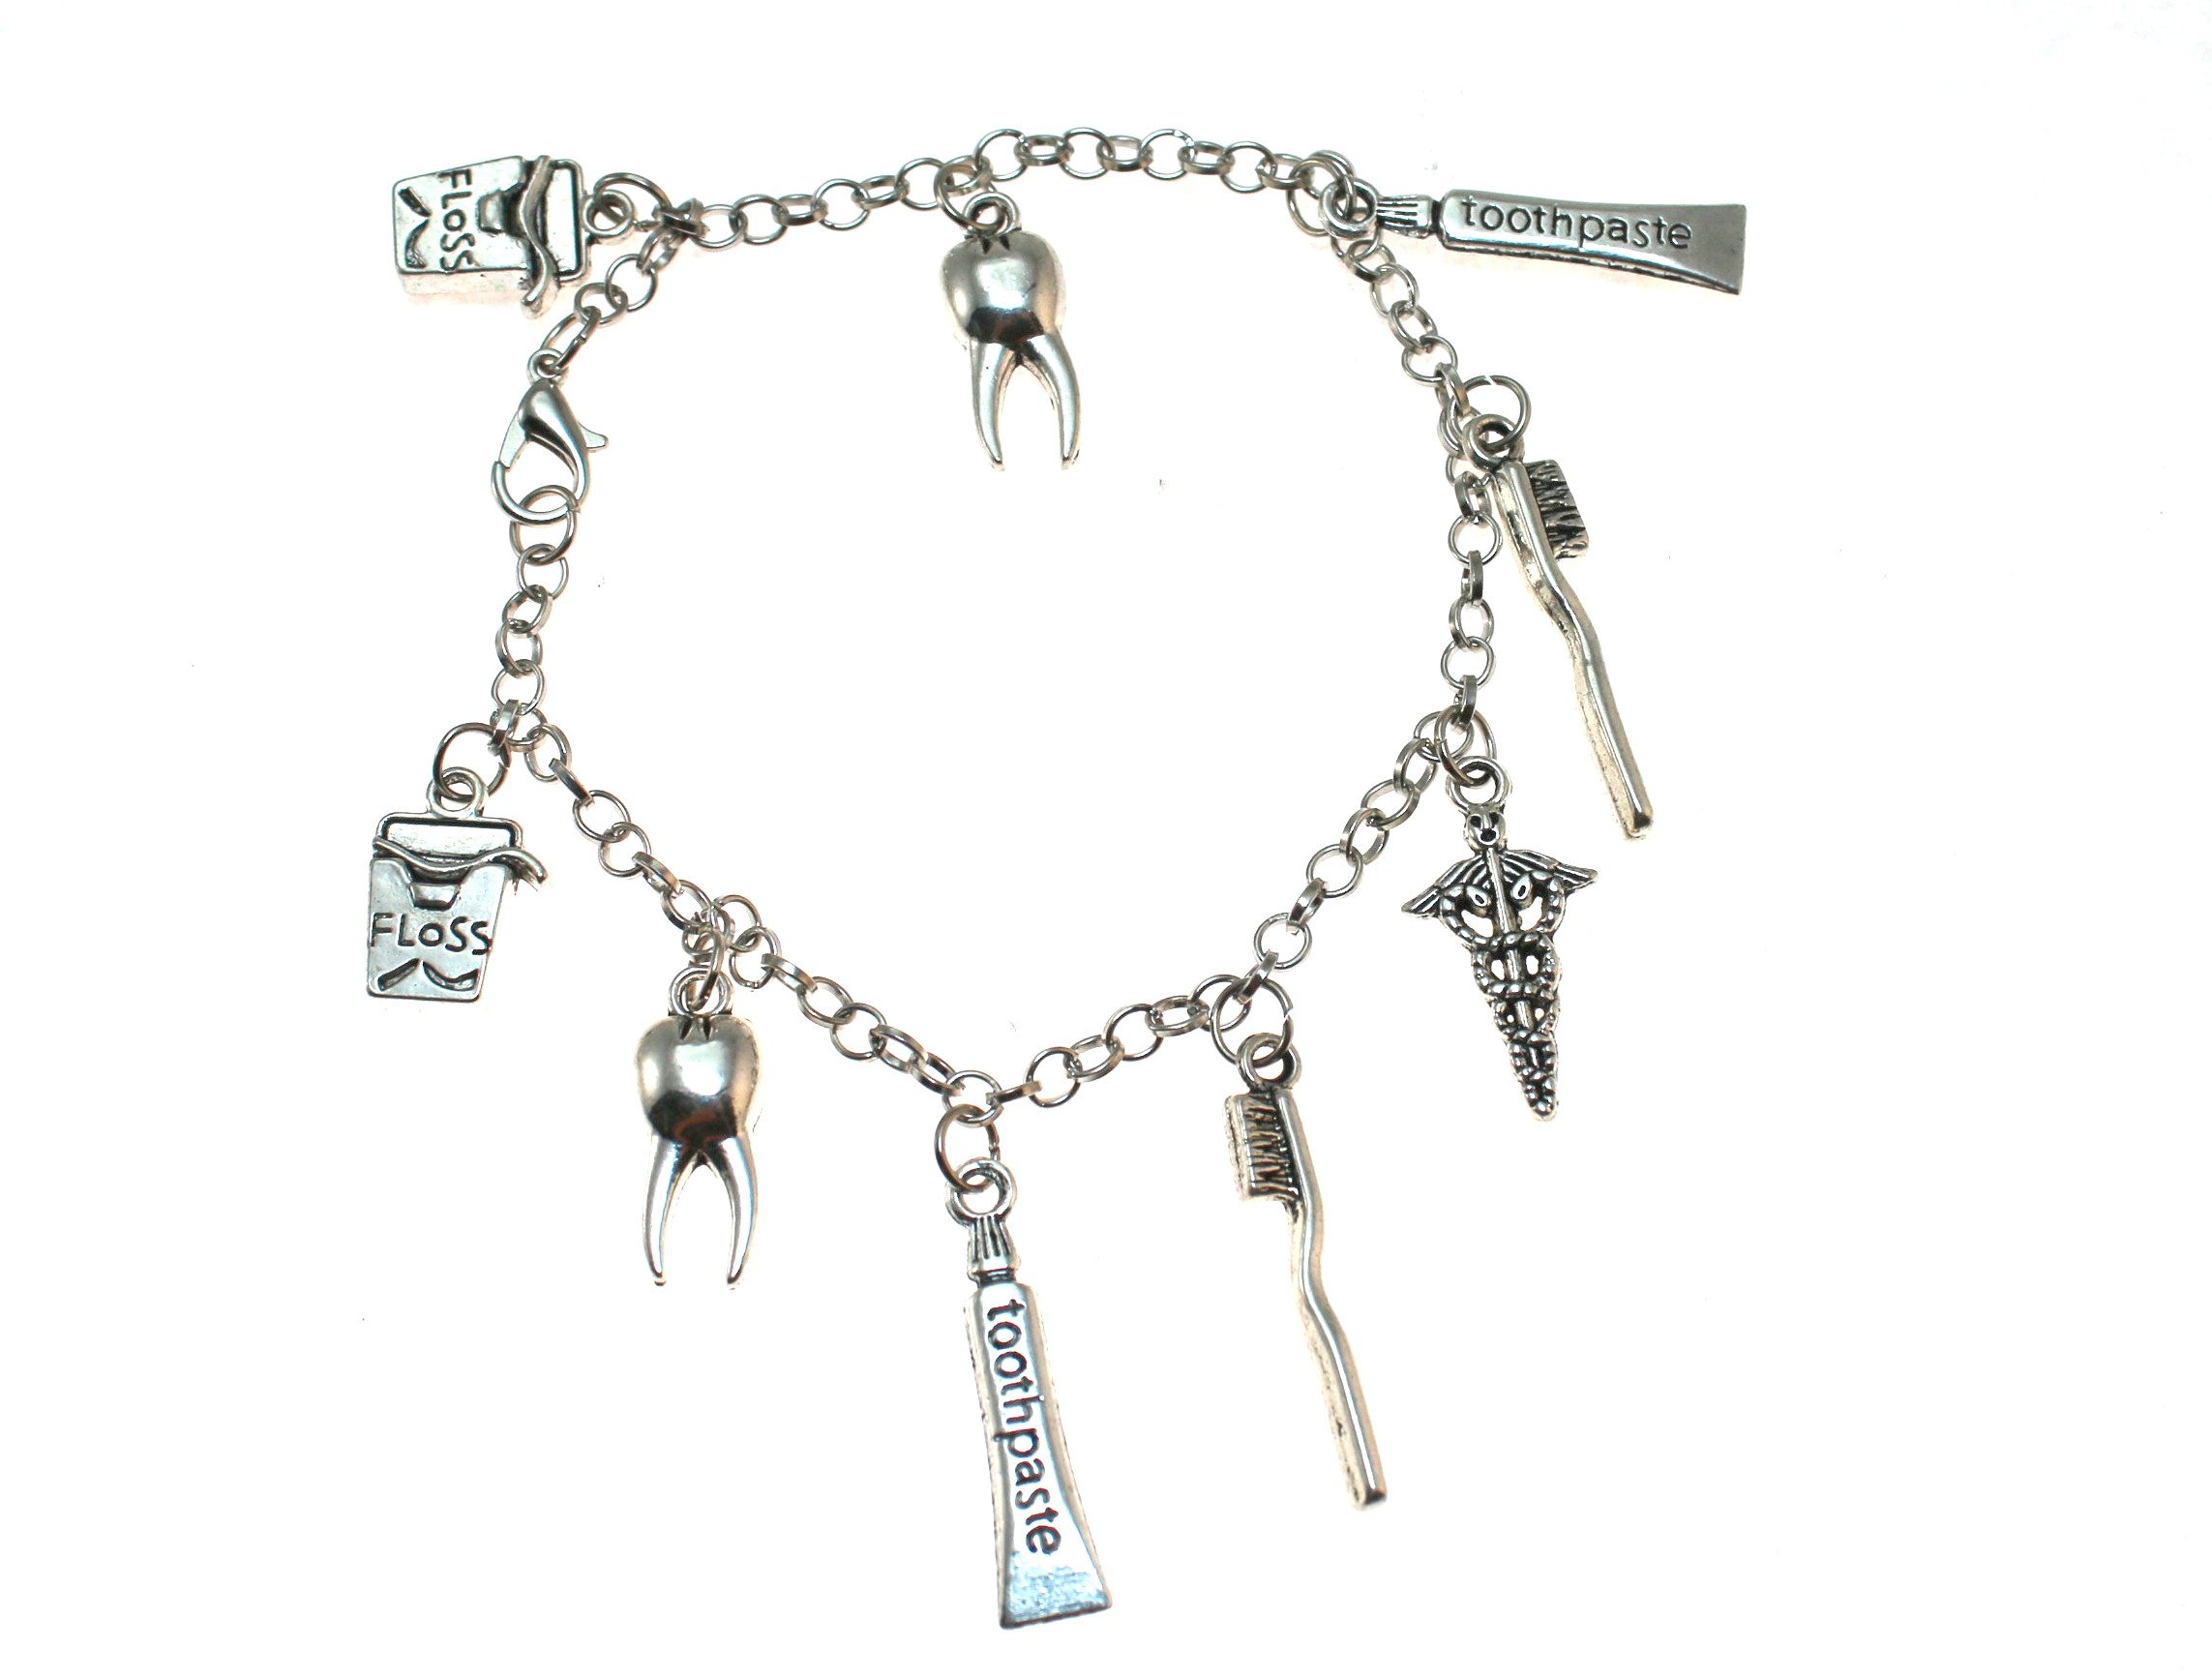 DENTIST or HYGENIST Toothpaste,Tooth Brush, Floss,Caduceus,& Tooth Charm Bracelet.. Gift Boxed